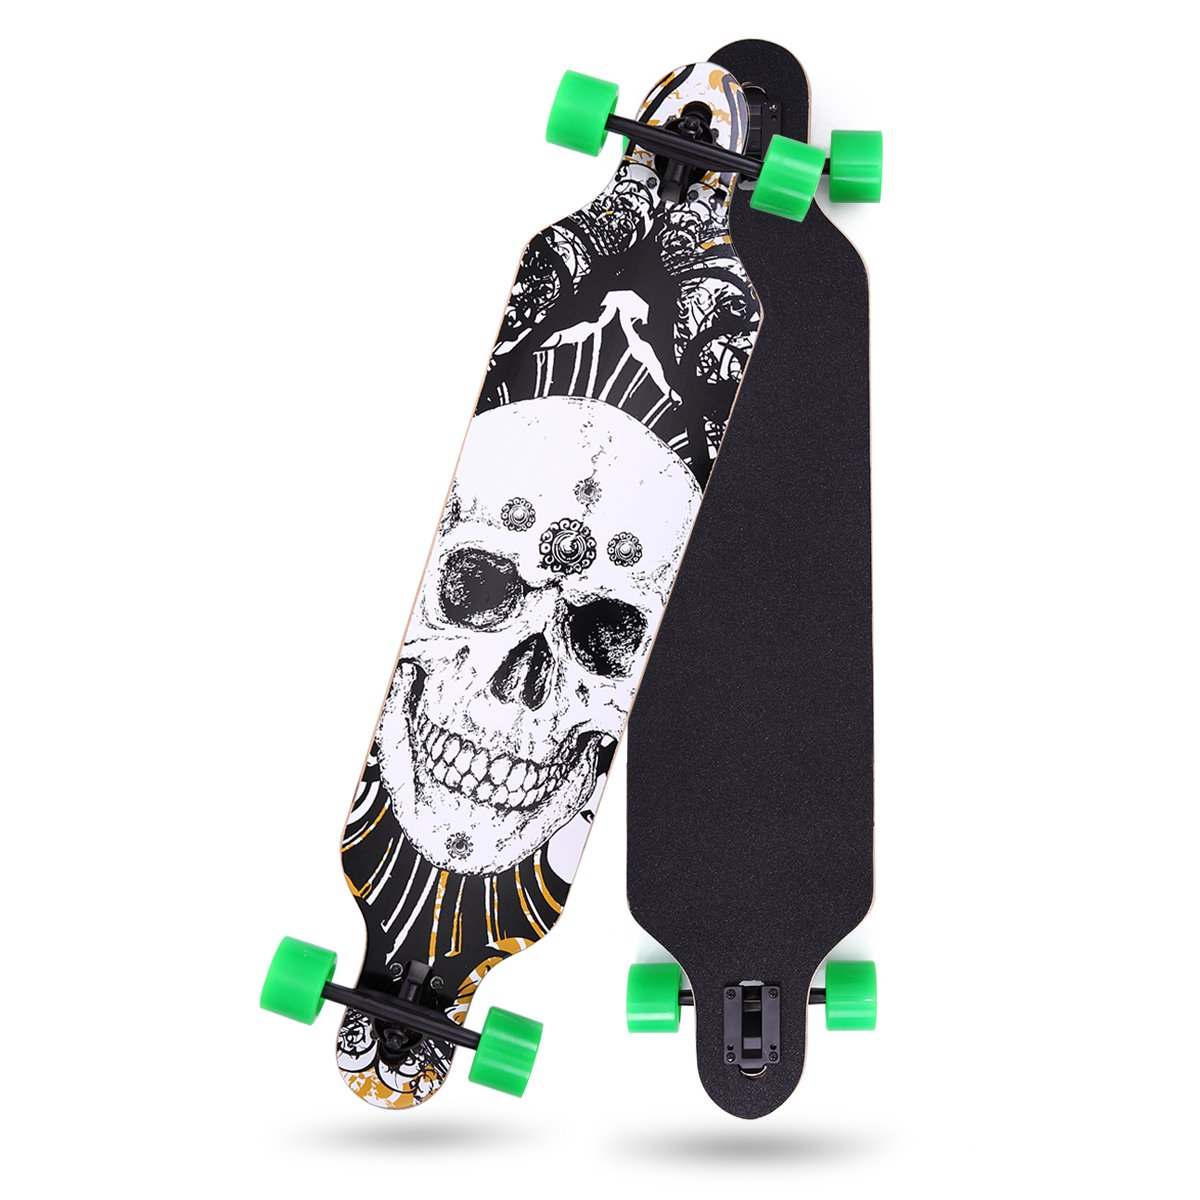 LAZYMOON 41'' X 10'' Professional Long Board Skateboard Cruiser Through downhill 9 Layer Canadian Maple Complete, Black Skull